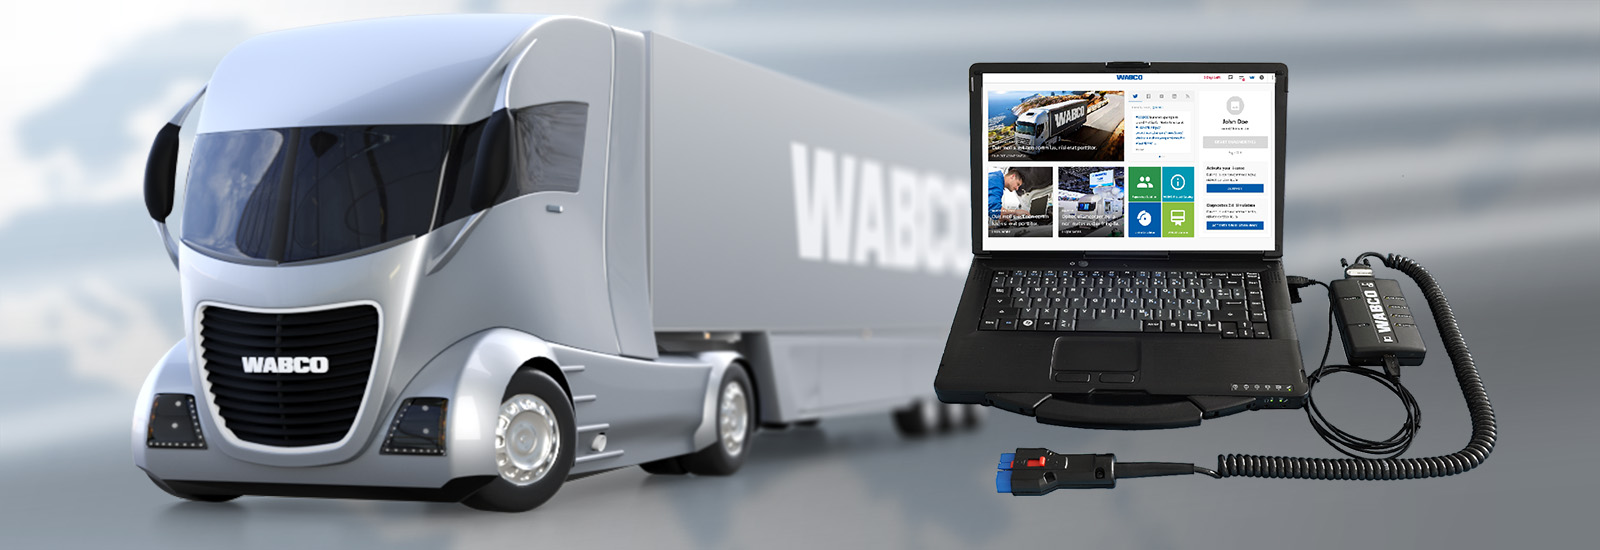 WABCO ECUs and WABCO-approved Diagnostic Tools: They Speak the Same Language